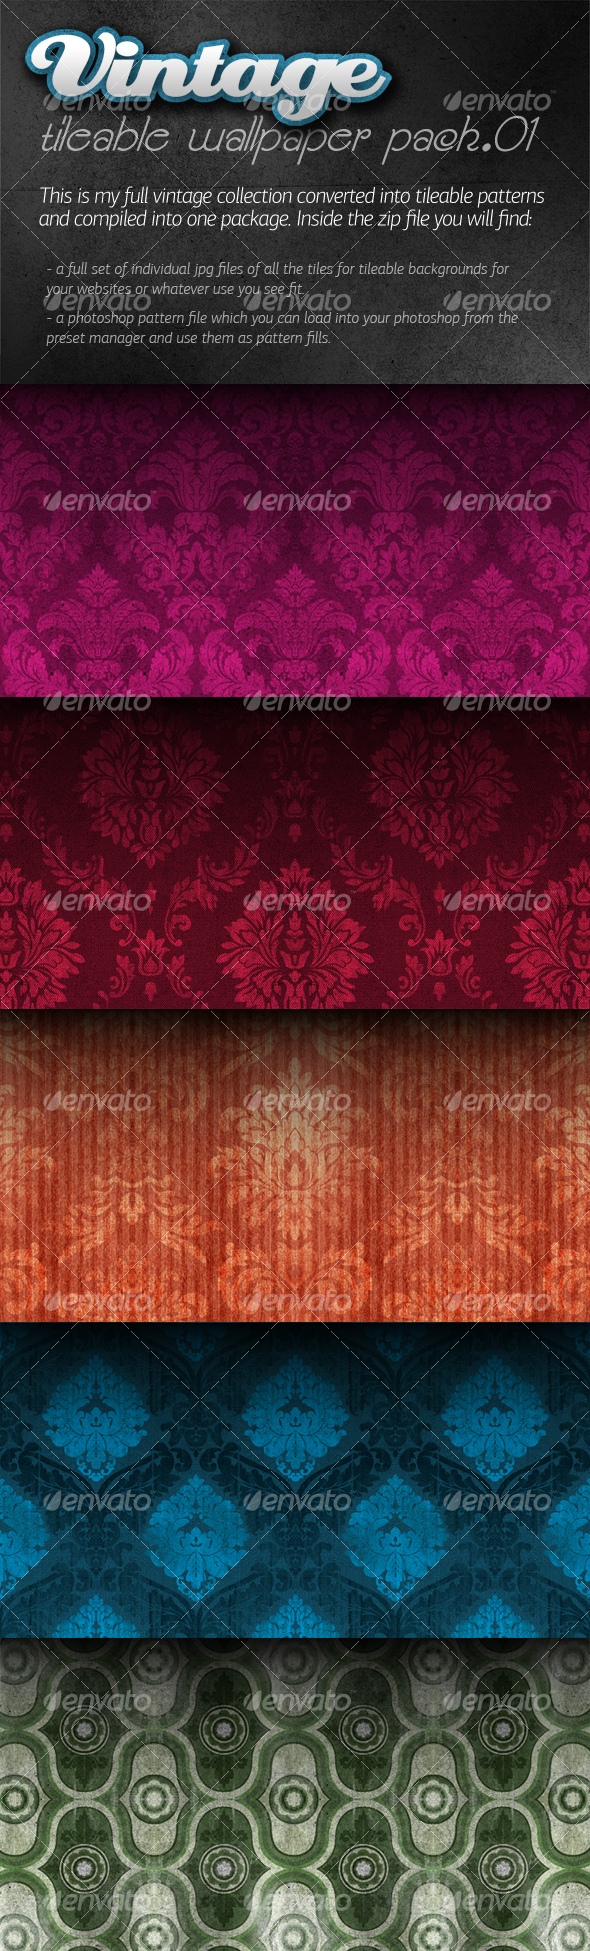 GraphicRiver Vintage Tileable Wallpaper Pack 01 89716